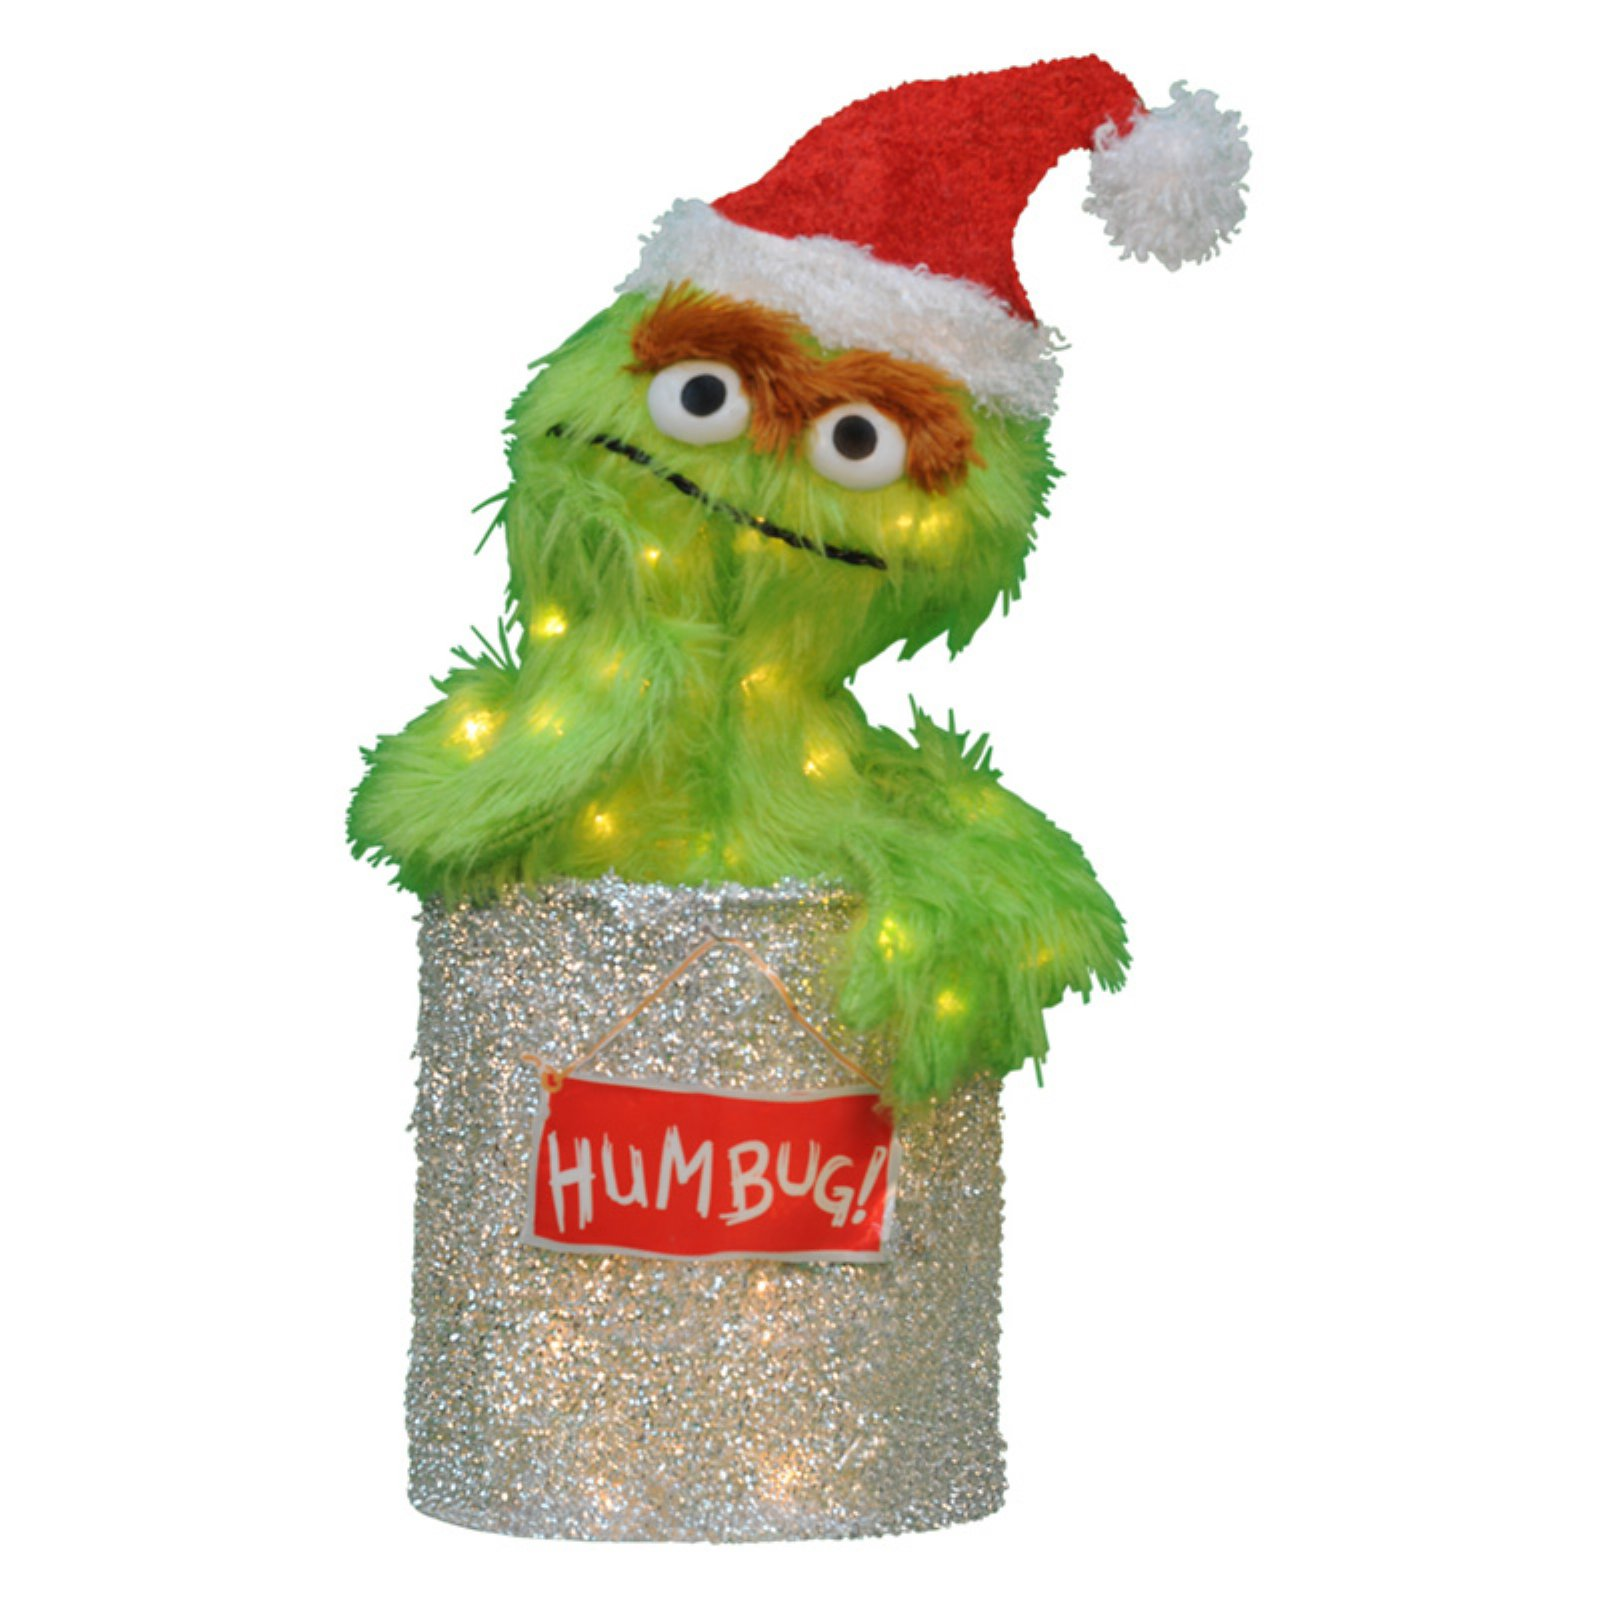 Product Works 18 in. Sesame Street Oscar the Grouch Lawn Art